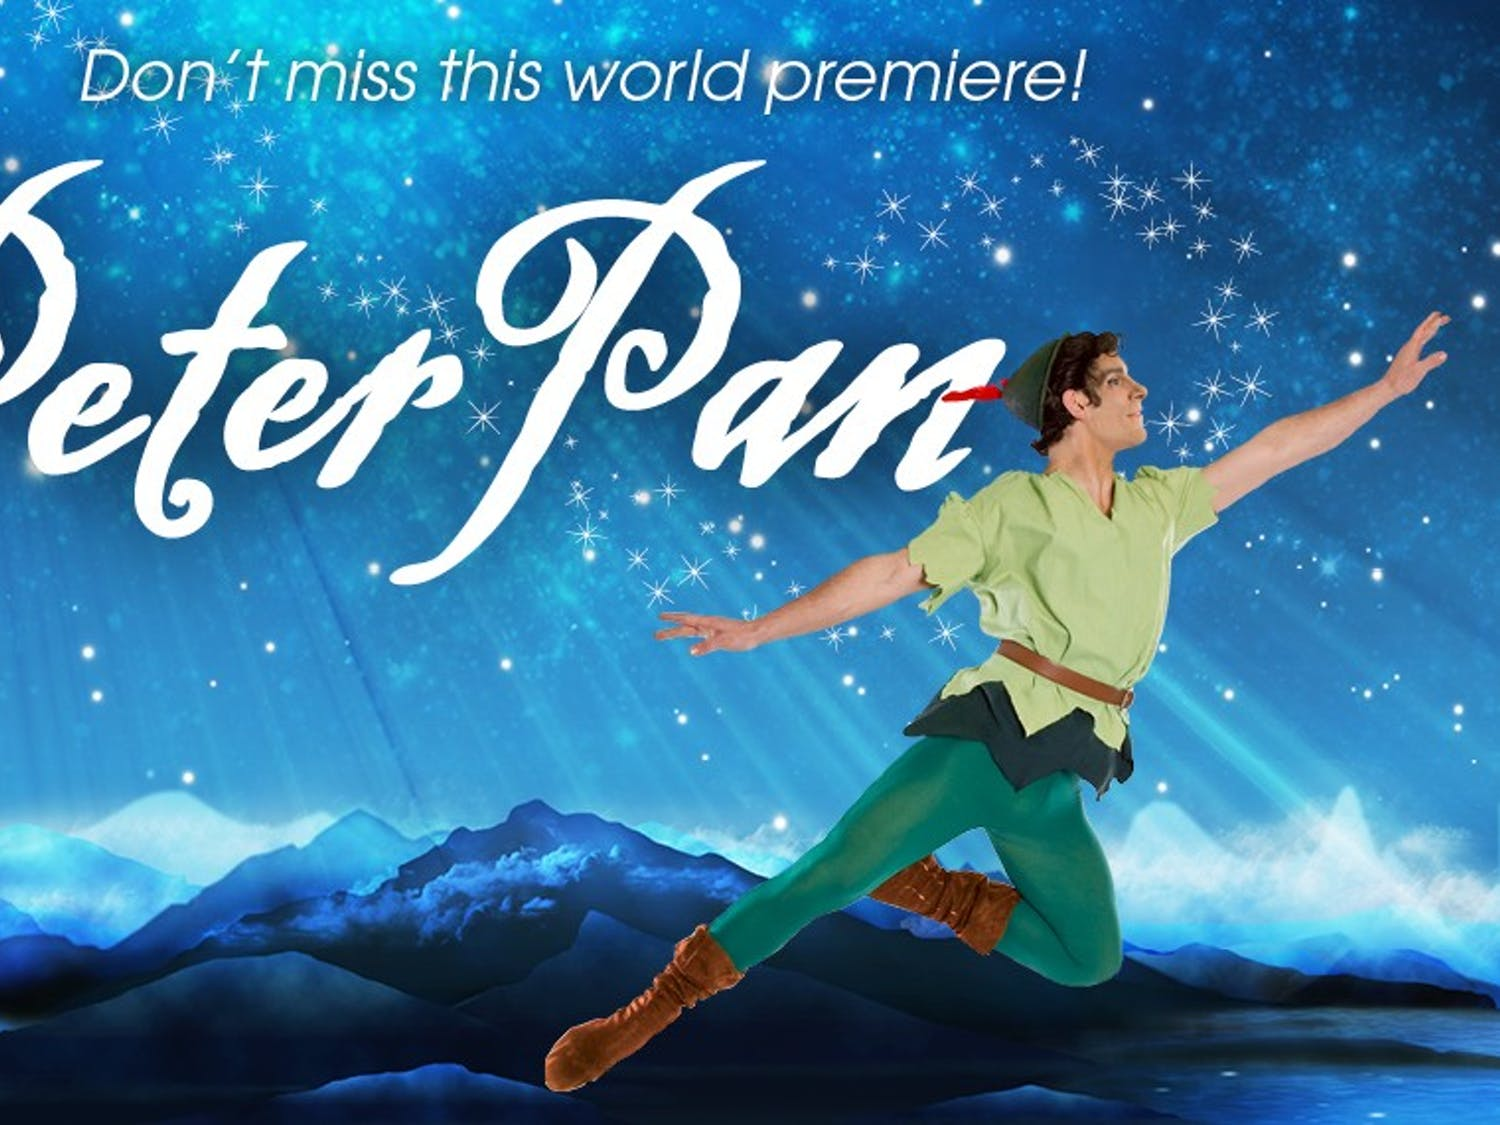 Columbia City Ballet Artistic Director William Starrett brings the story of Peter Pan to the stage through original choreography and whimsical characters.